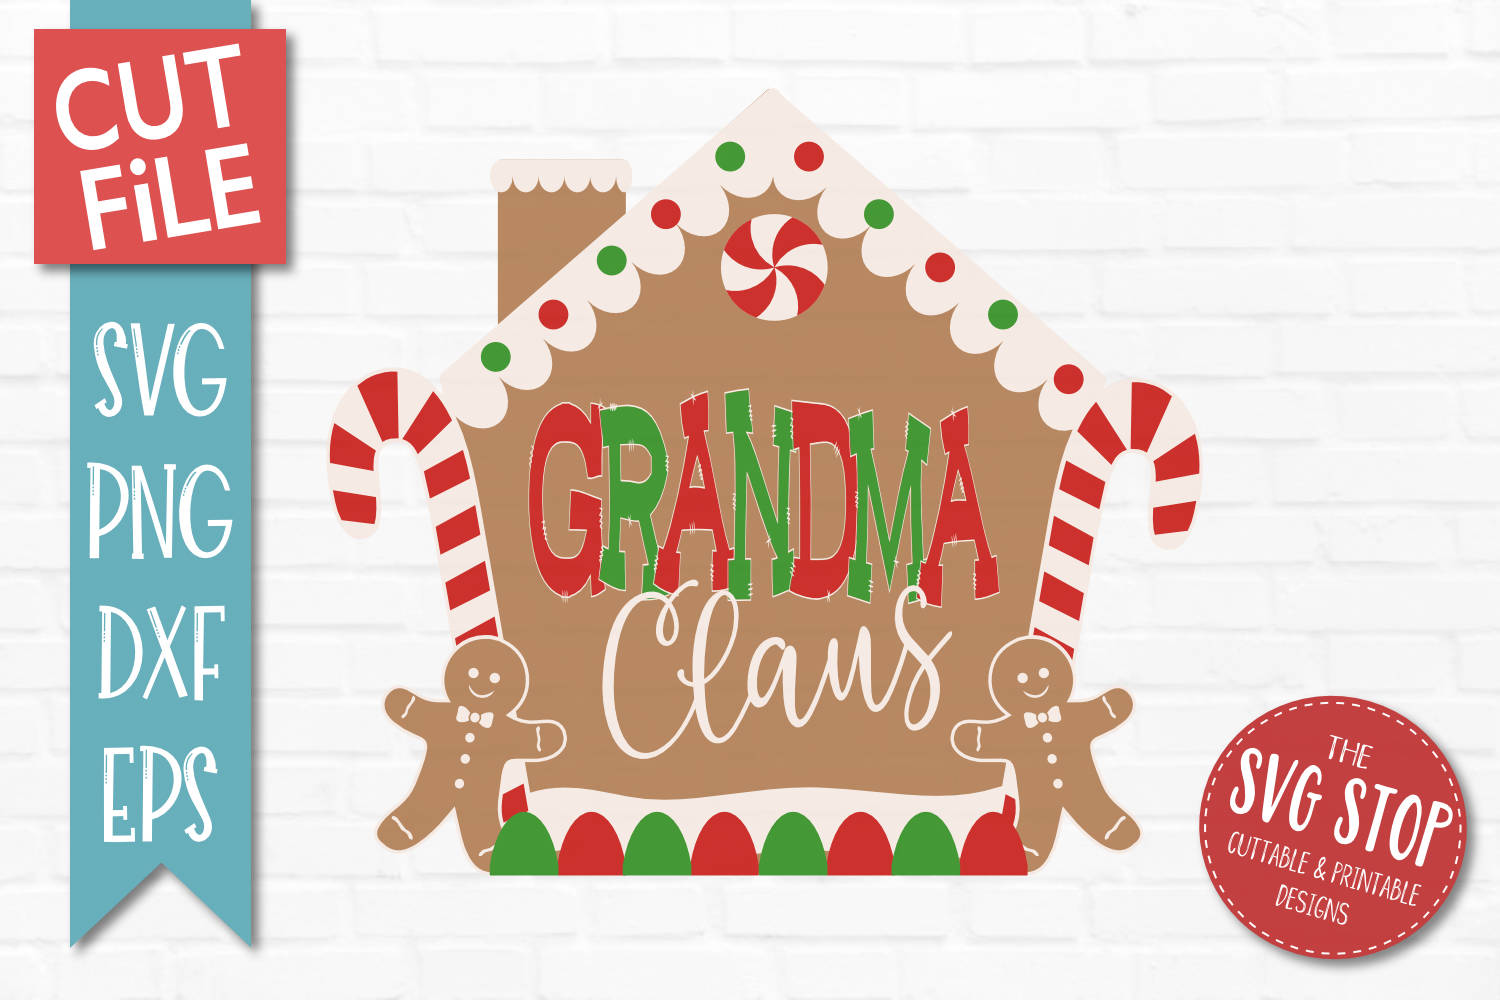 Grandma Claus Gingerbread Christmas SVG, PNG, DXF, EPS example image 1